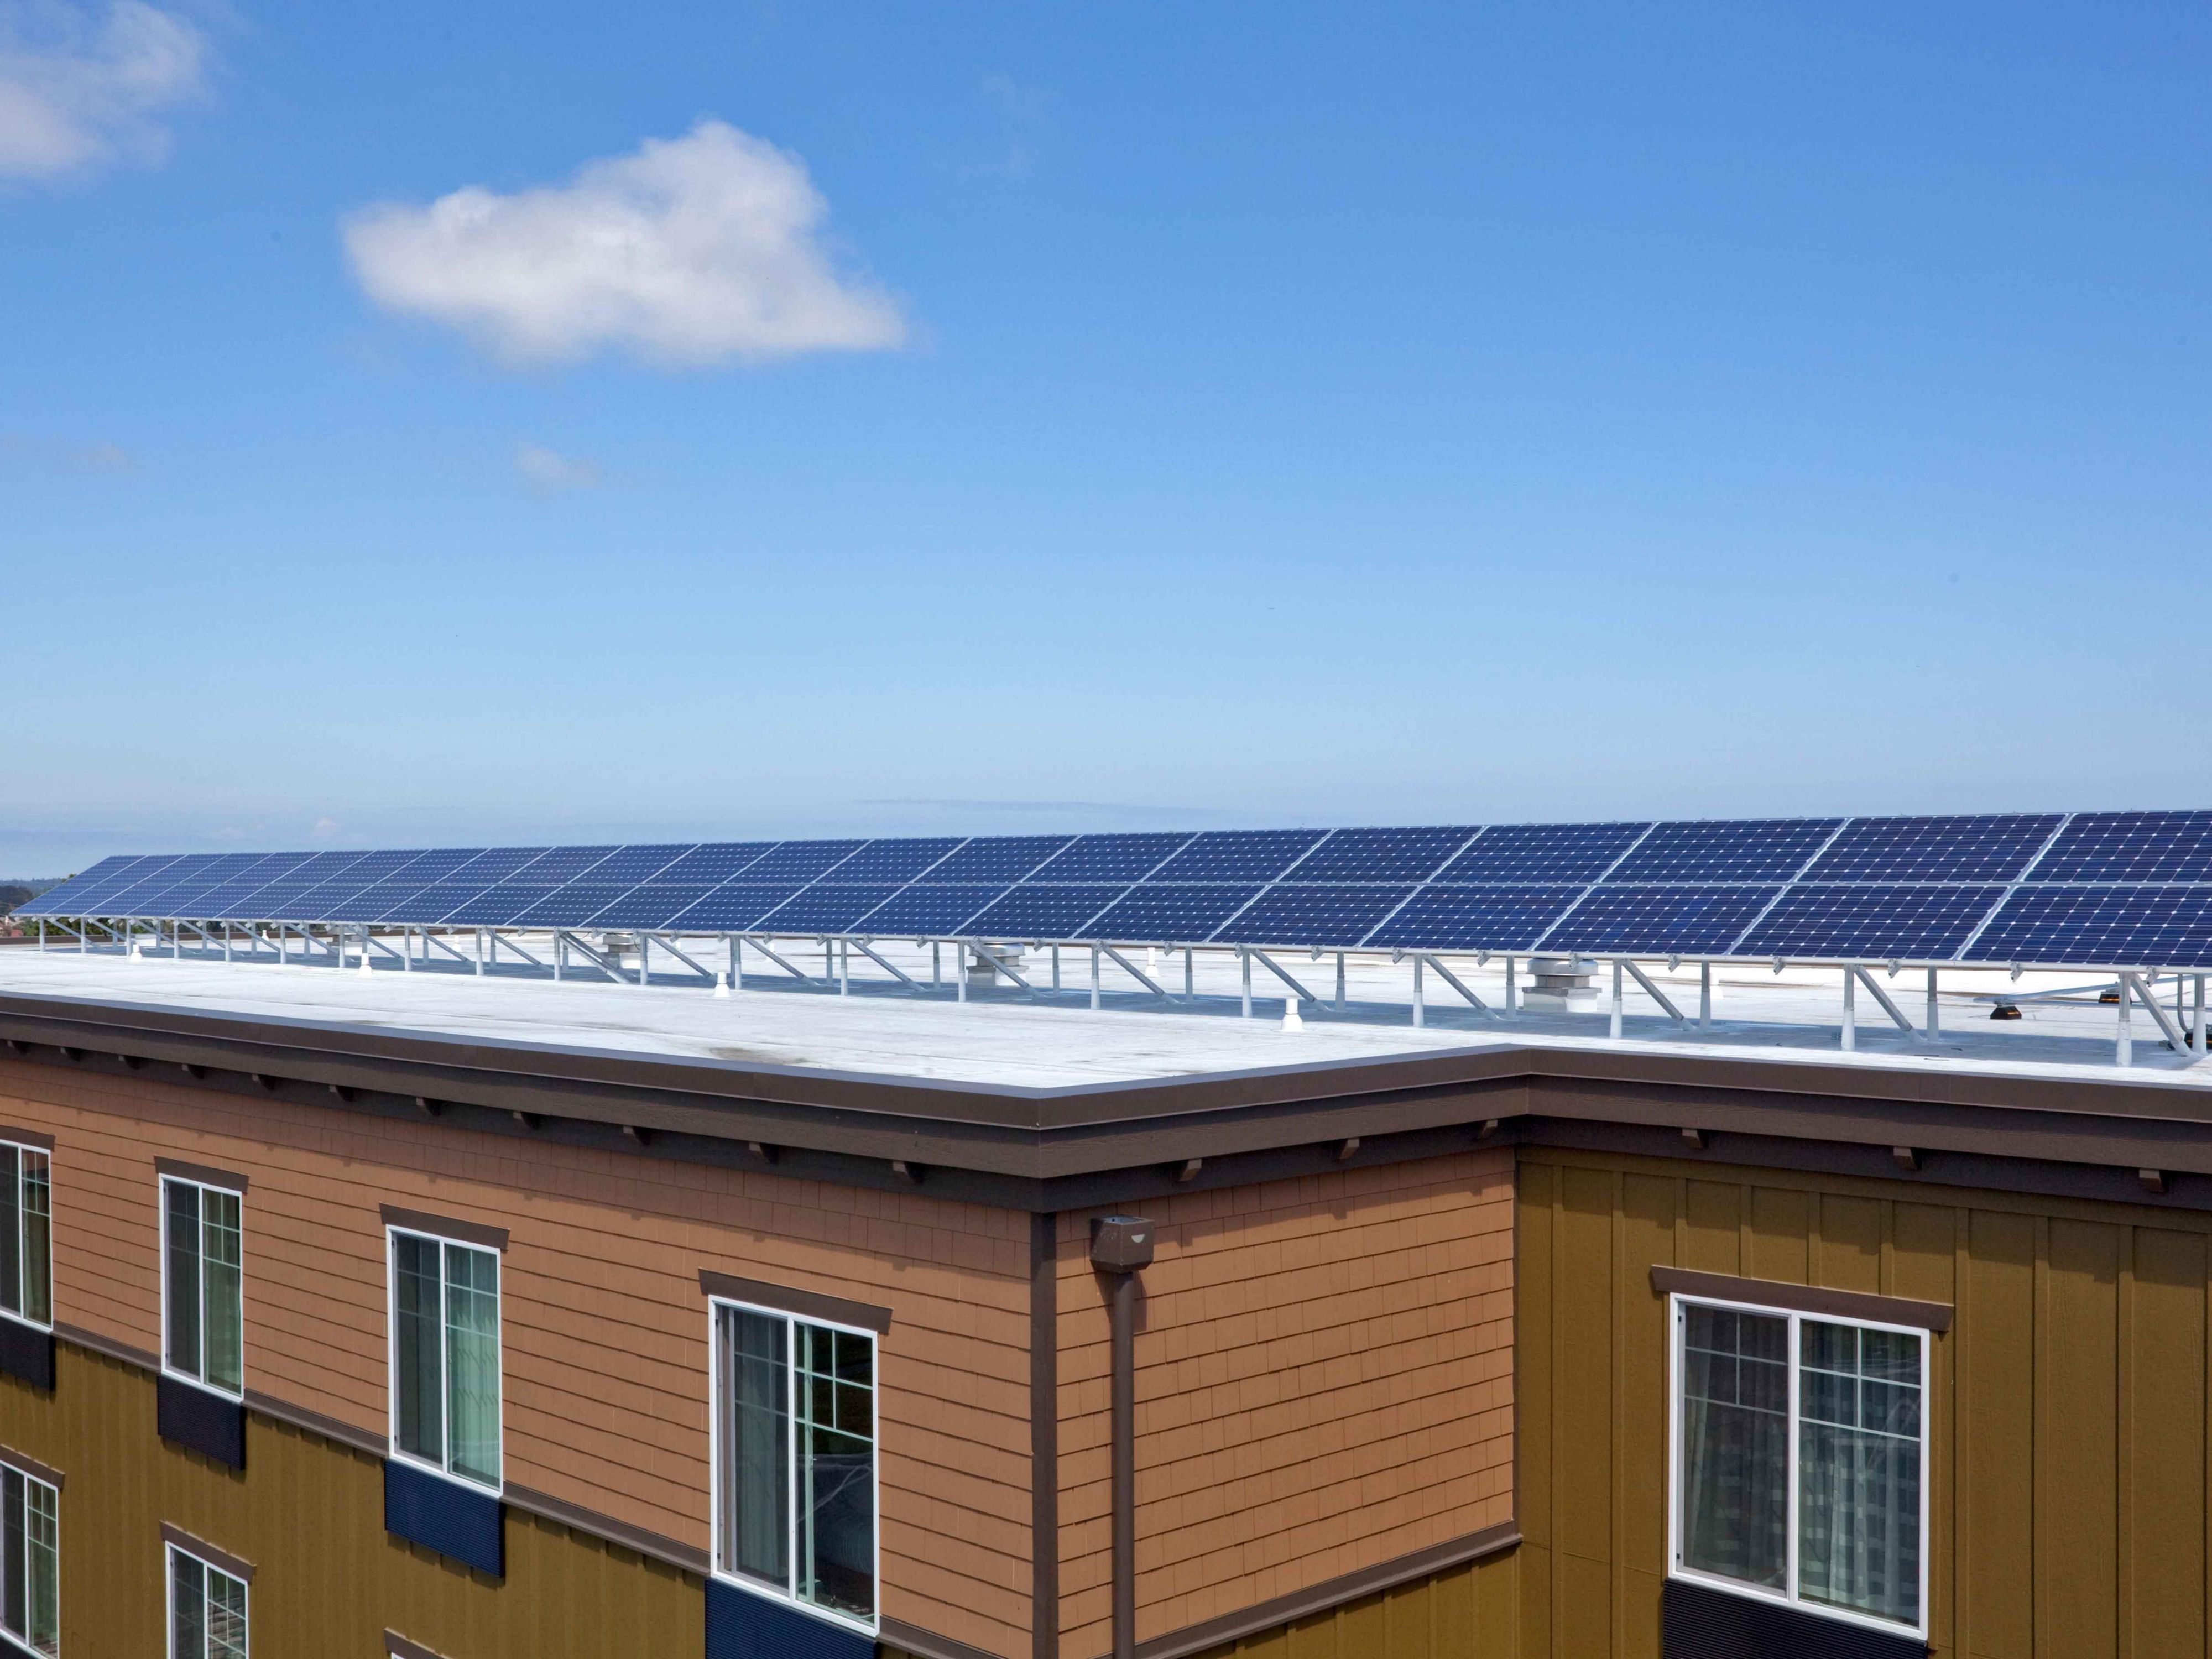 Solar panels offer a Sequim Conference center 'Powered by the Sun'